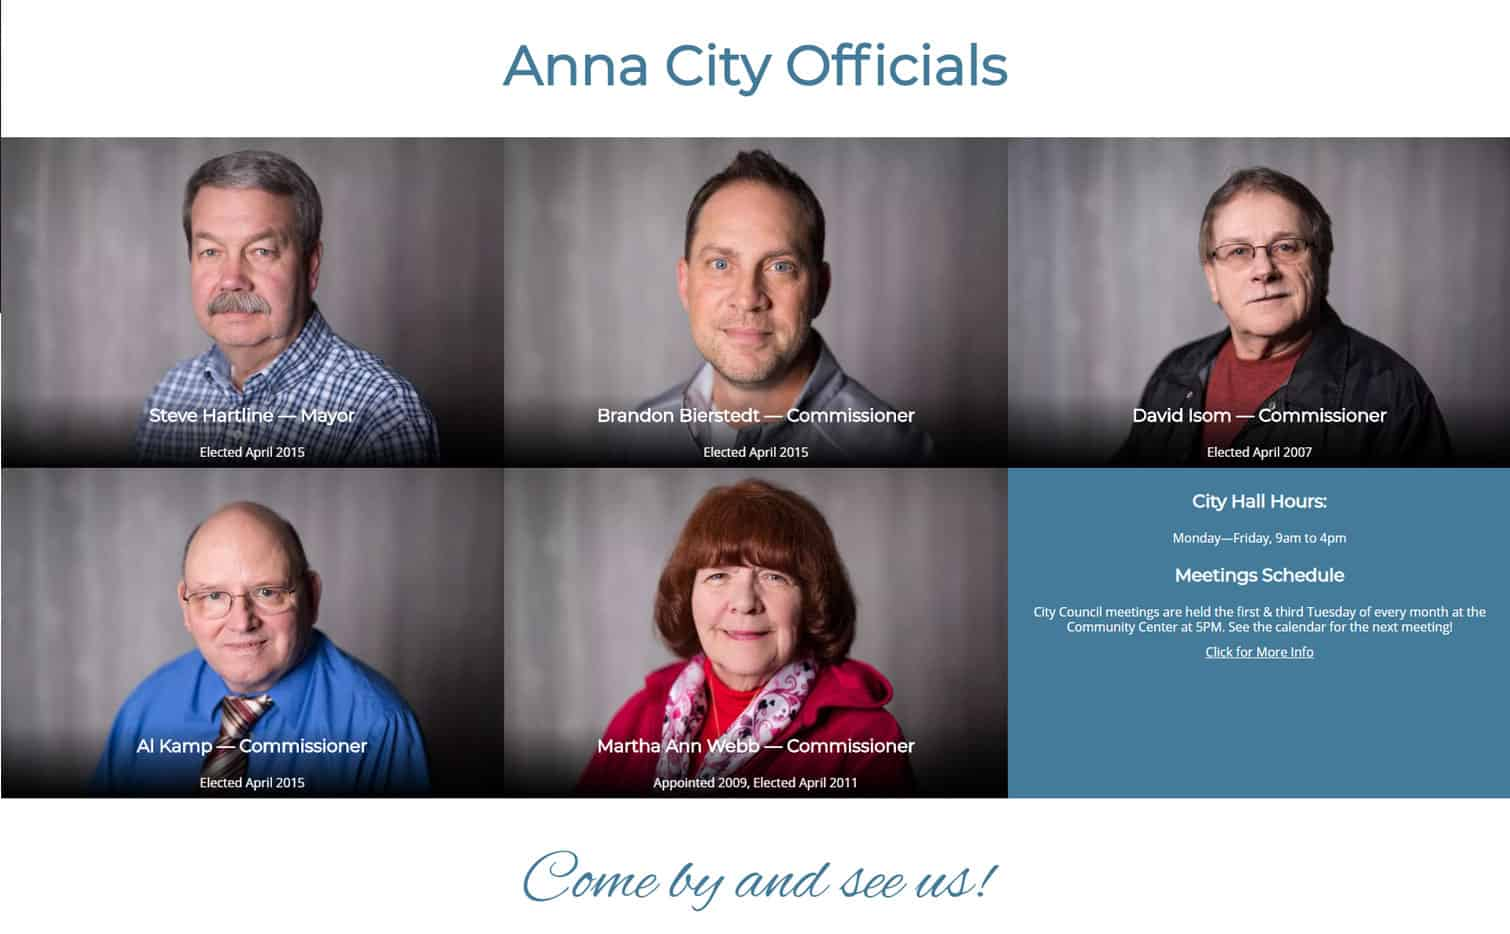 Responsive website design for City of Anna, IL